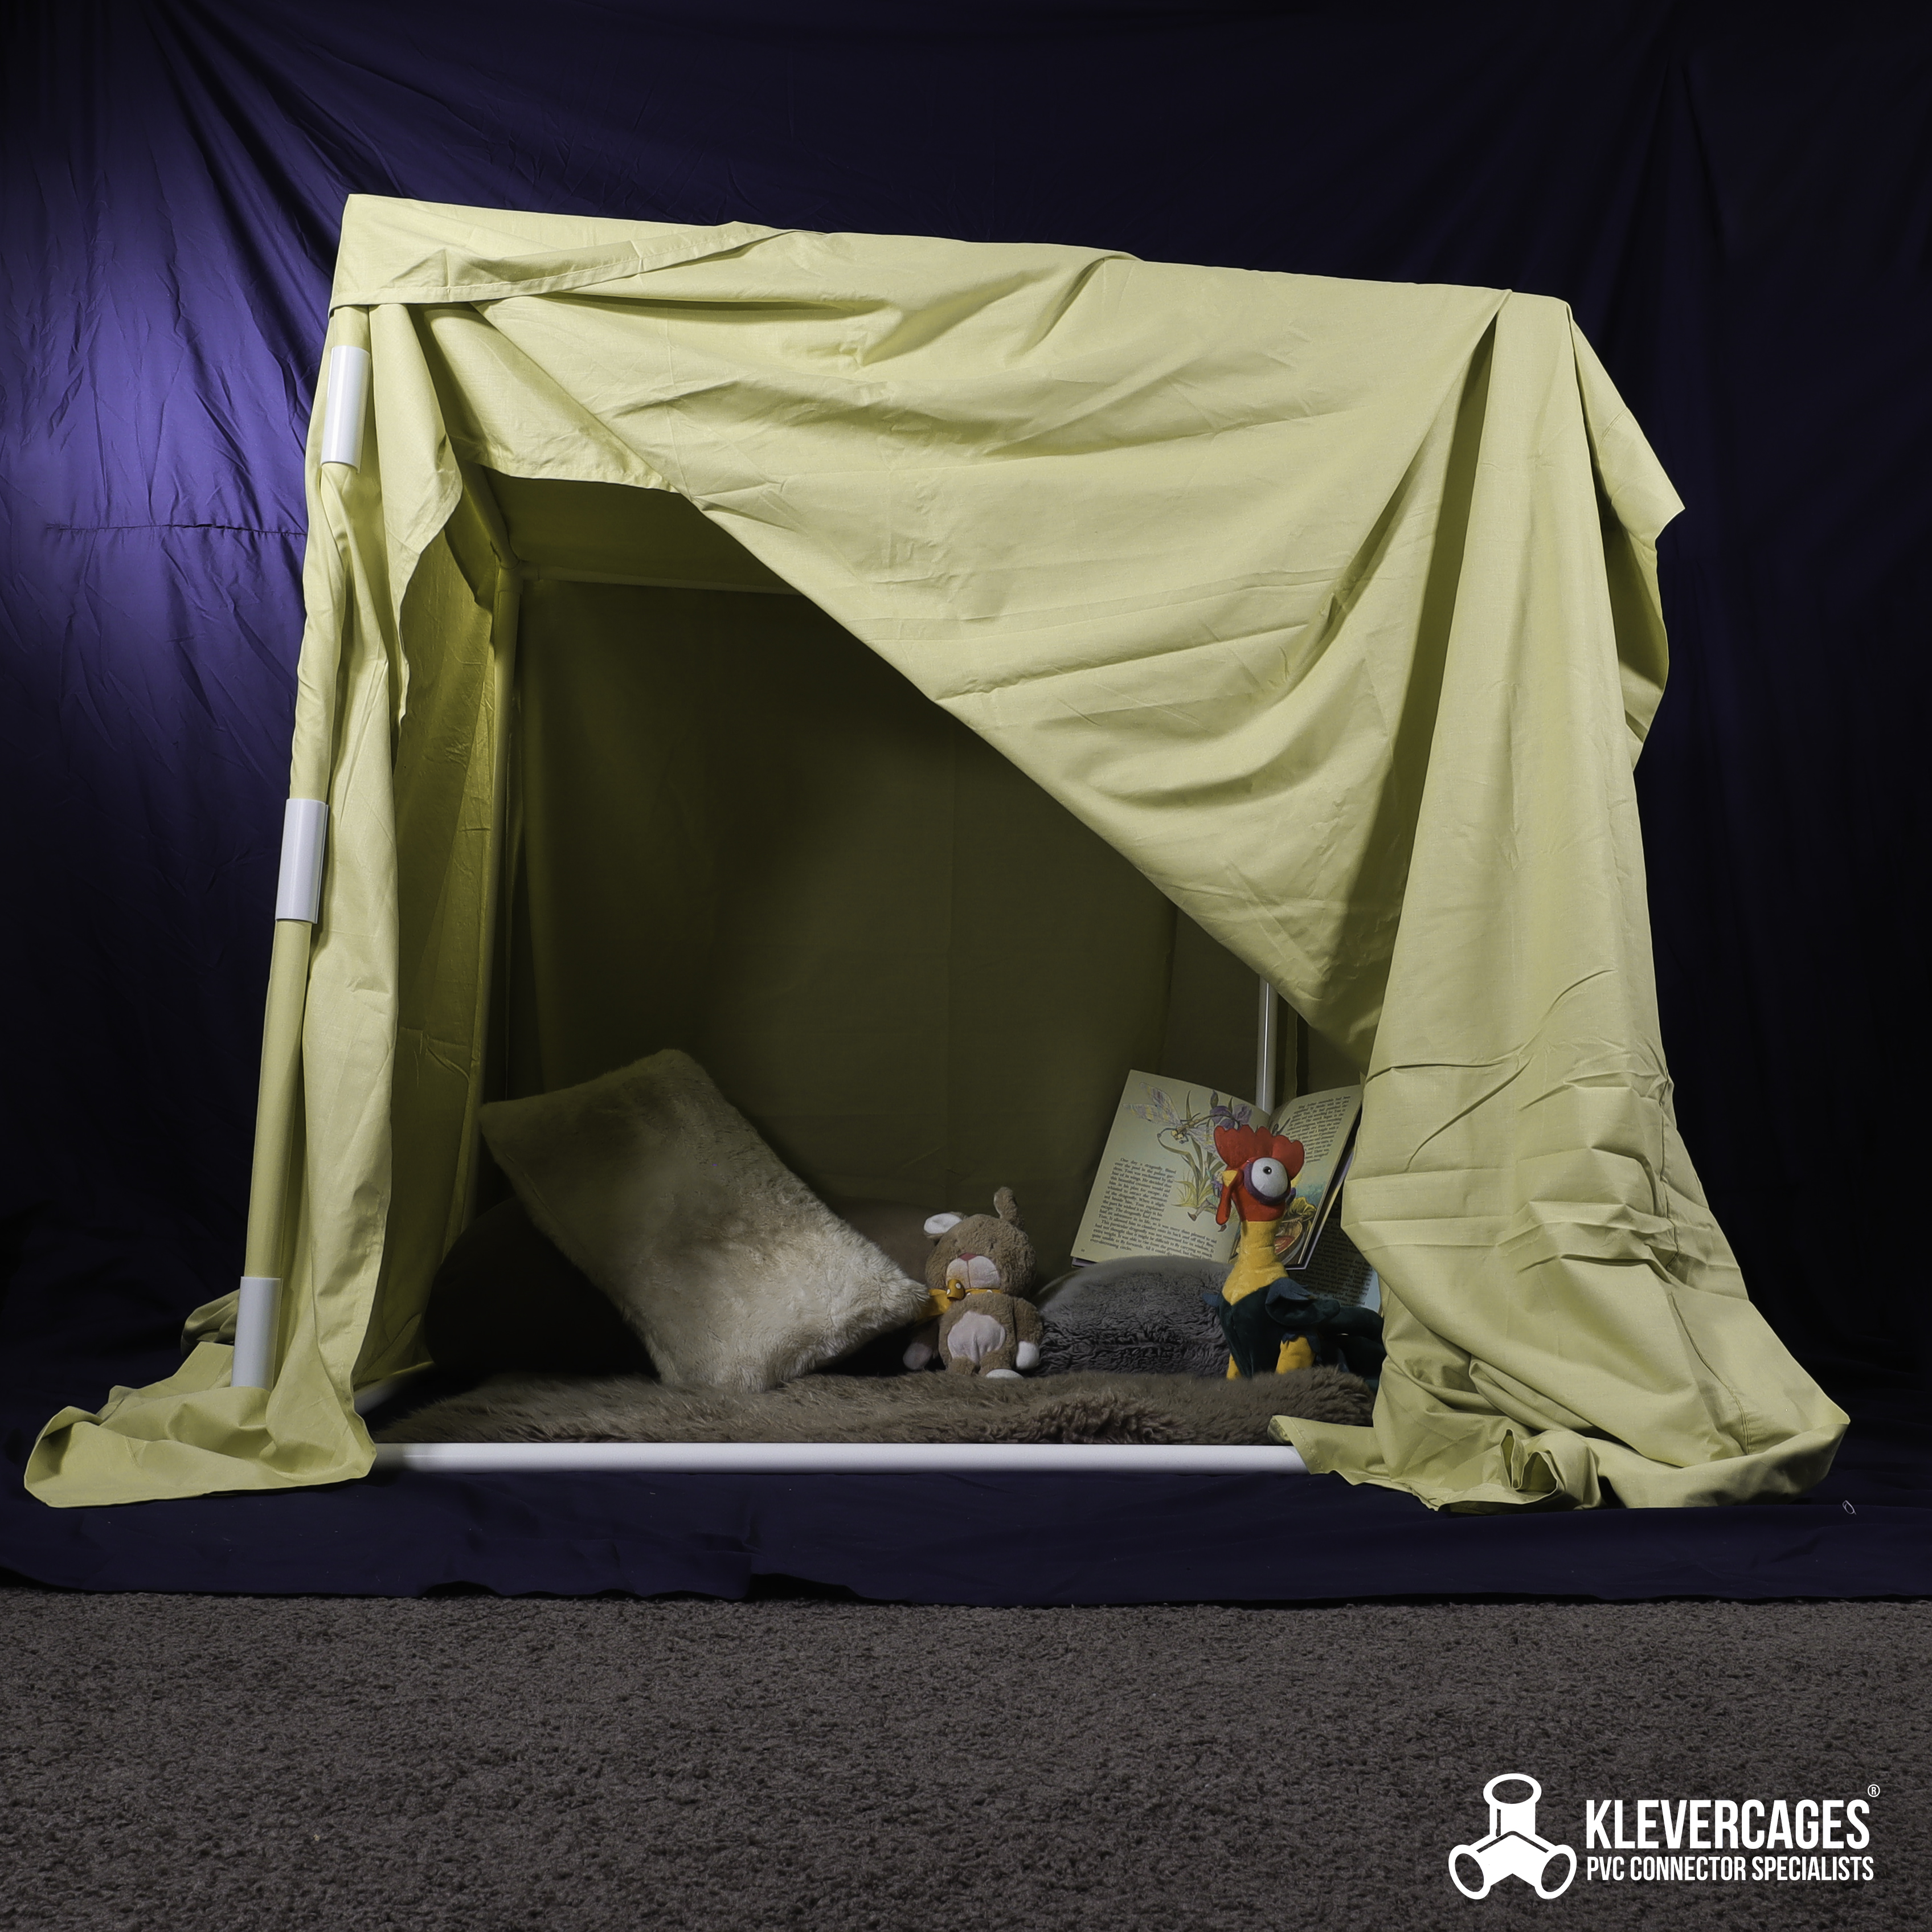 kids indoor cubby built with PVC pressure pipe, 3 way connectors, snap clamps and sheets for a quiet place for children to read, play and rest